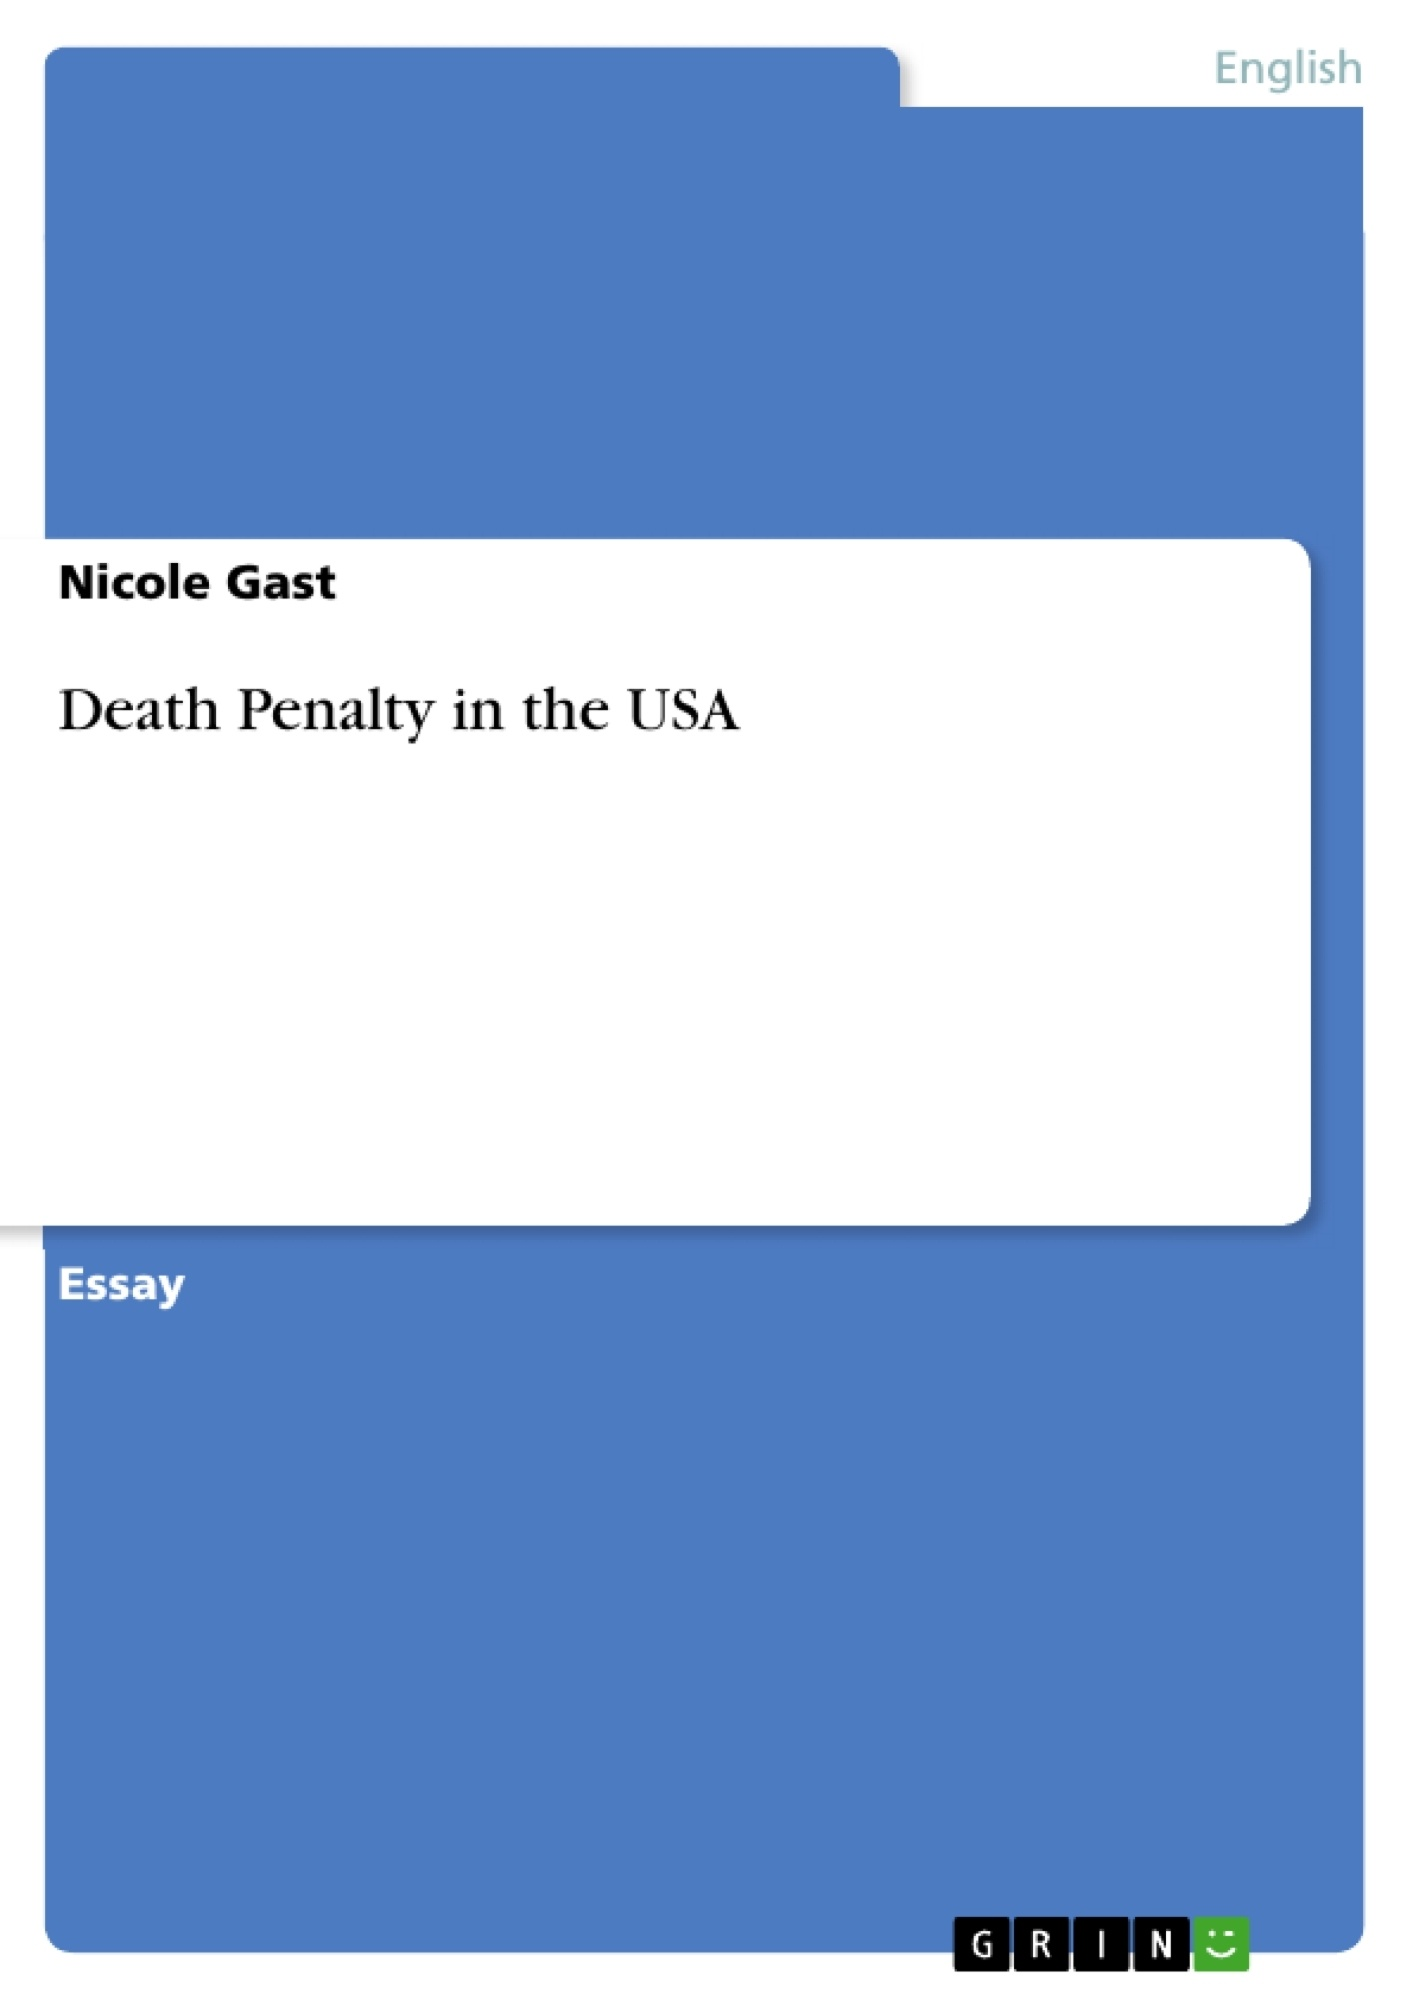 """an analysis of the pros and cons of death penalty in the united states By mid-2012, 140 countries had abolished the death penalty in law or   caribbean, cuba, guatemala, suriname and the usa retain the death penalty   the un special rapporteur on extrajudicial, summary or arbitrary executions has  stated that proceedings  """"anti-gang legislations, more cons than pros"""" ( available at."""